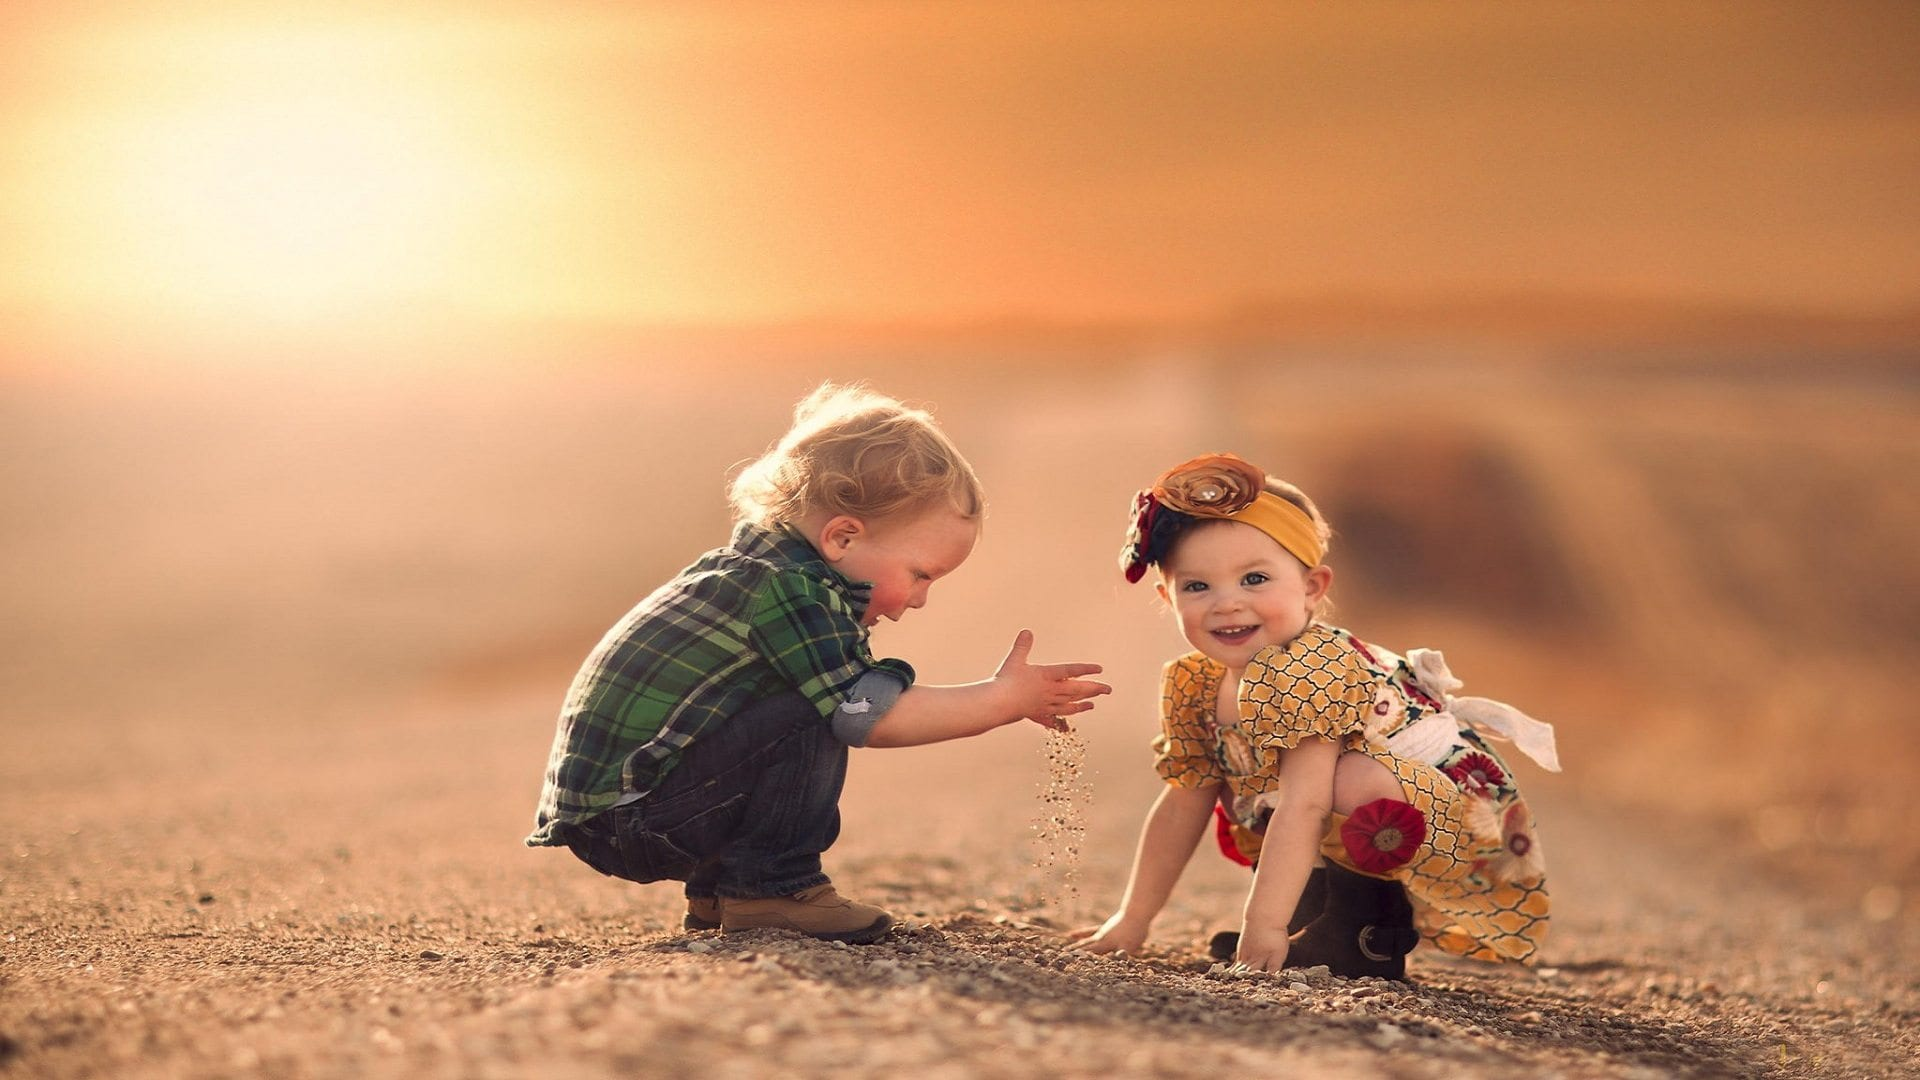 cute-kids-full-hd-wallpaper-for-desktop-background-download-cute-kids-images